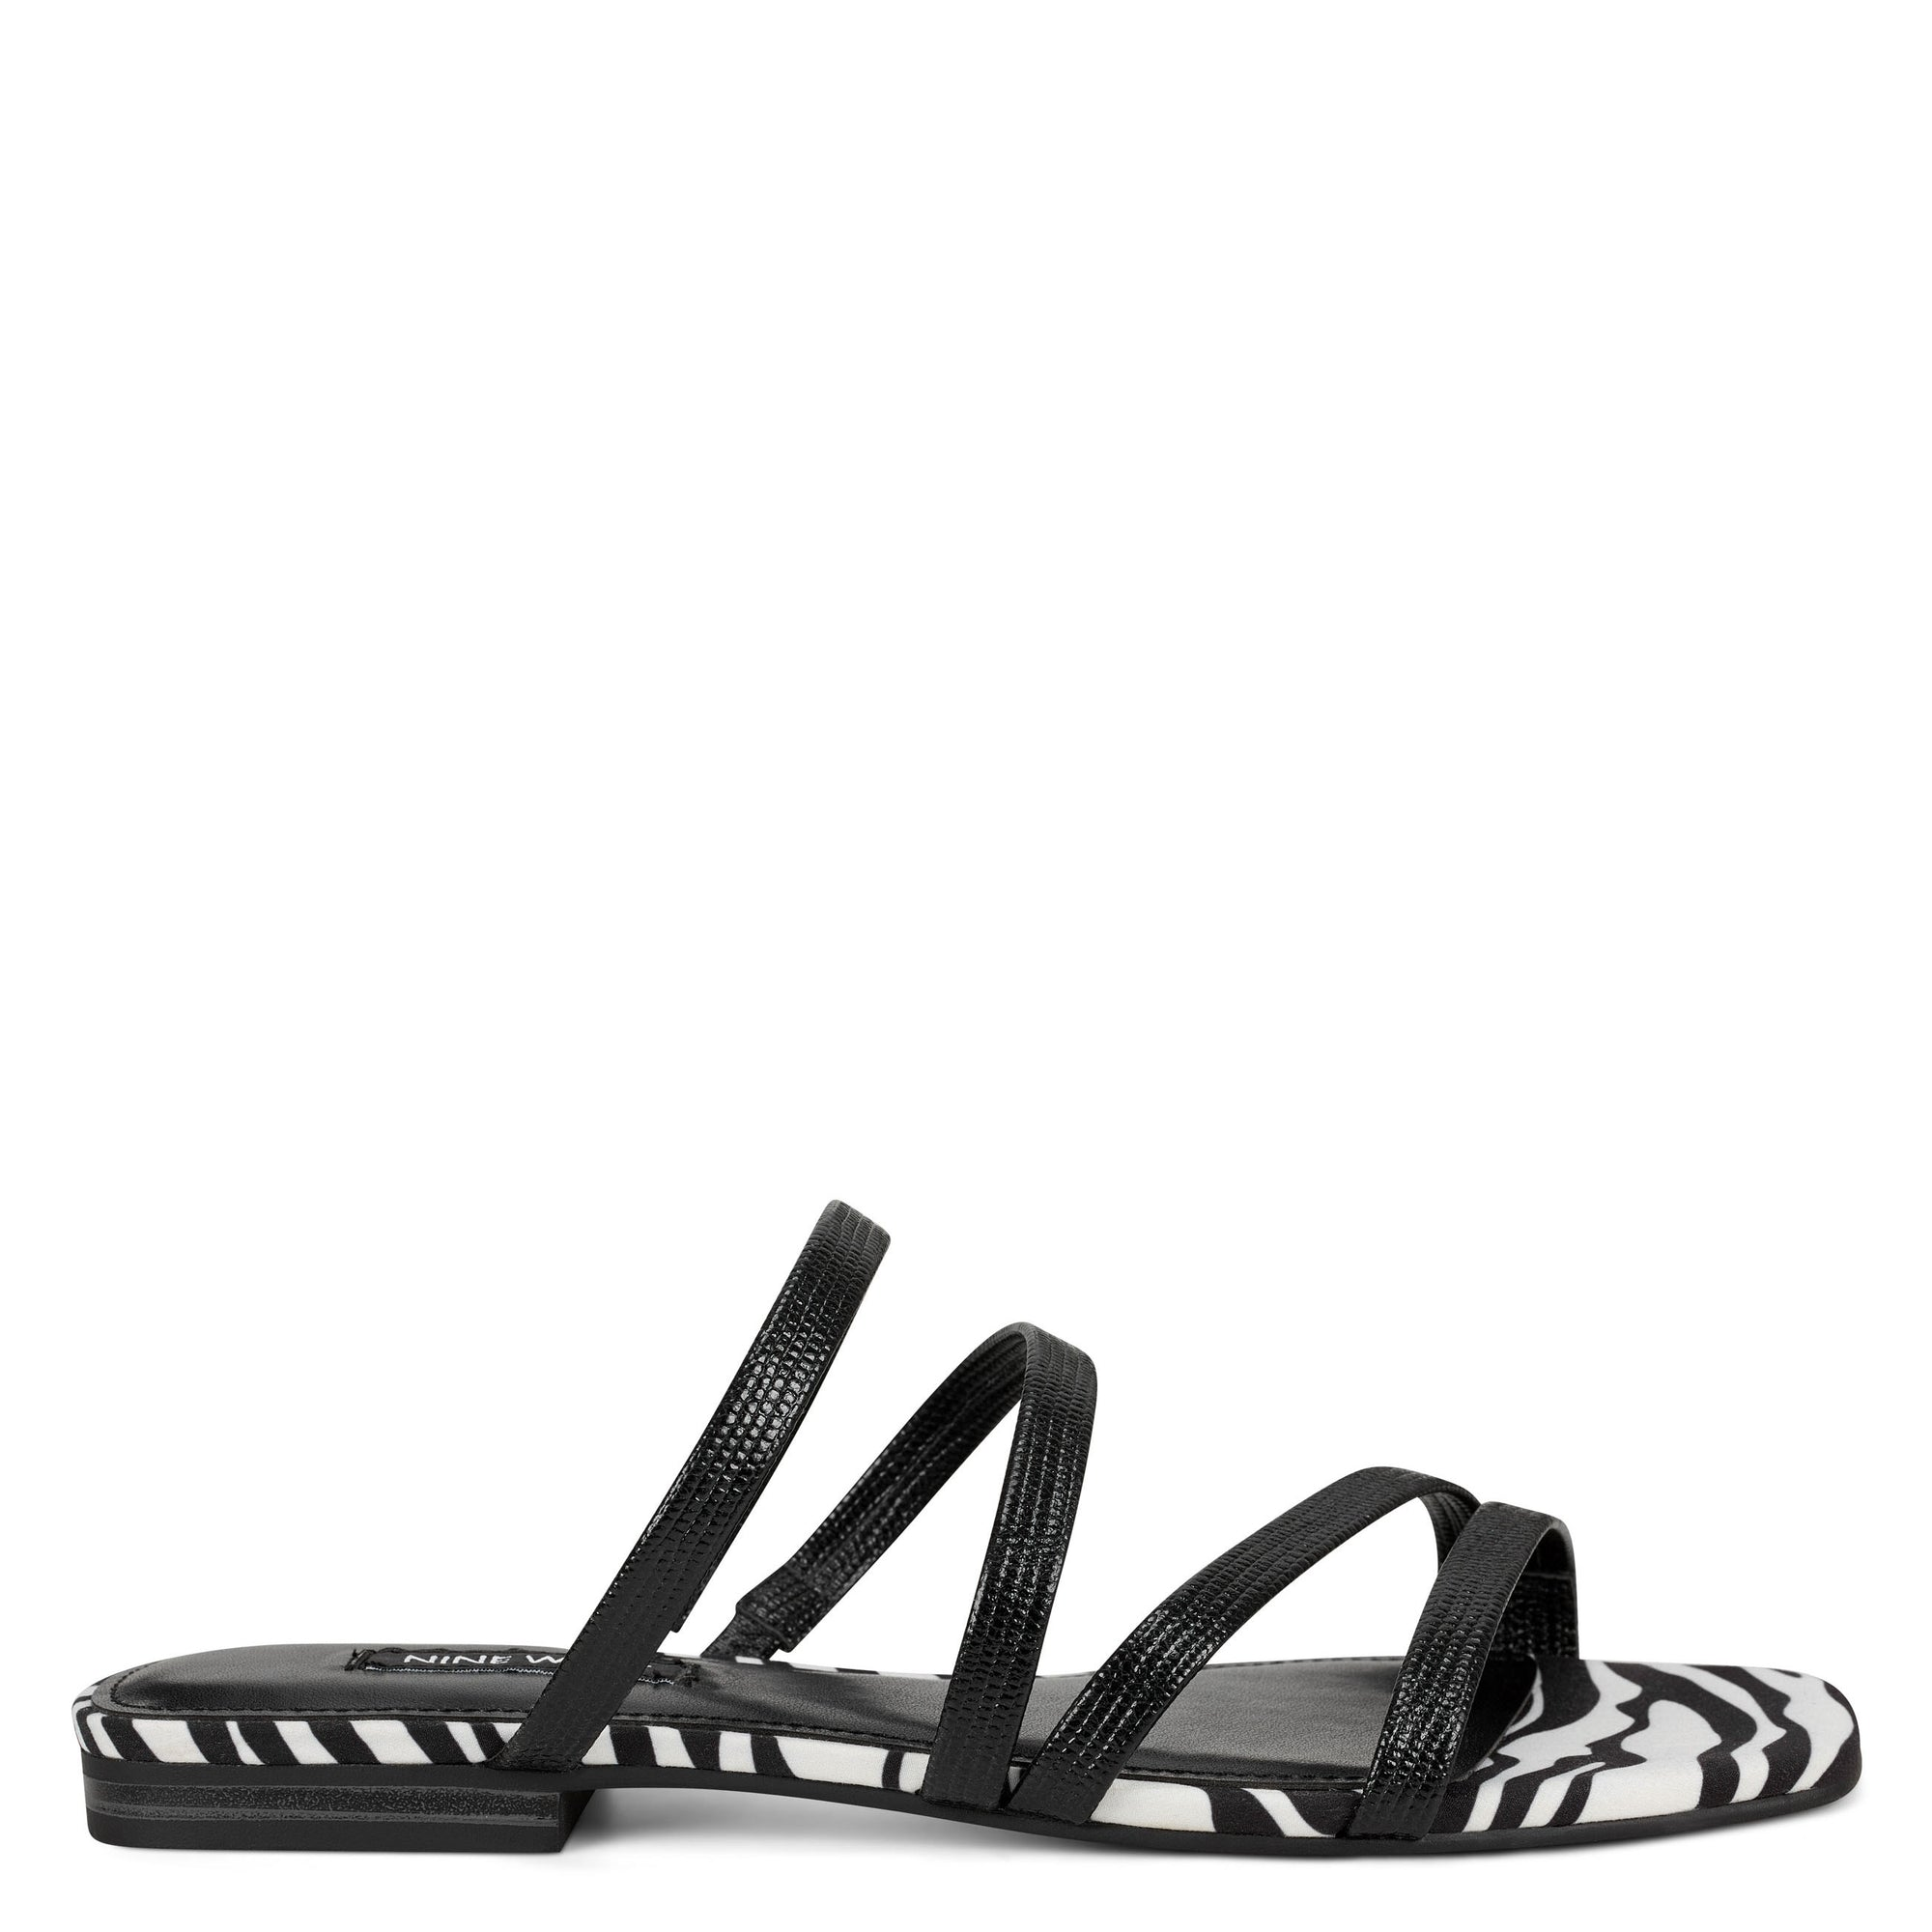 sean-flat-slide-sandals-in-black-lizard-multi